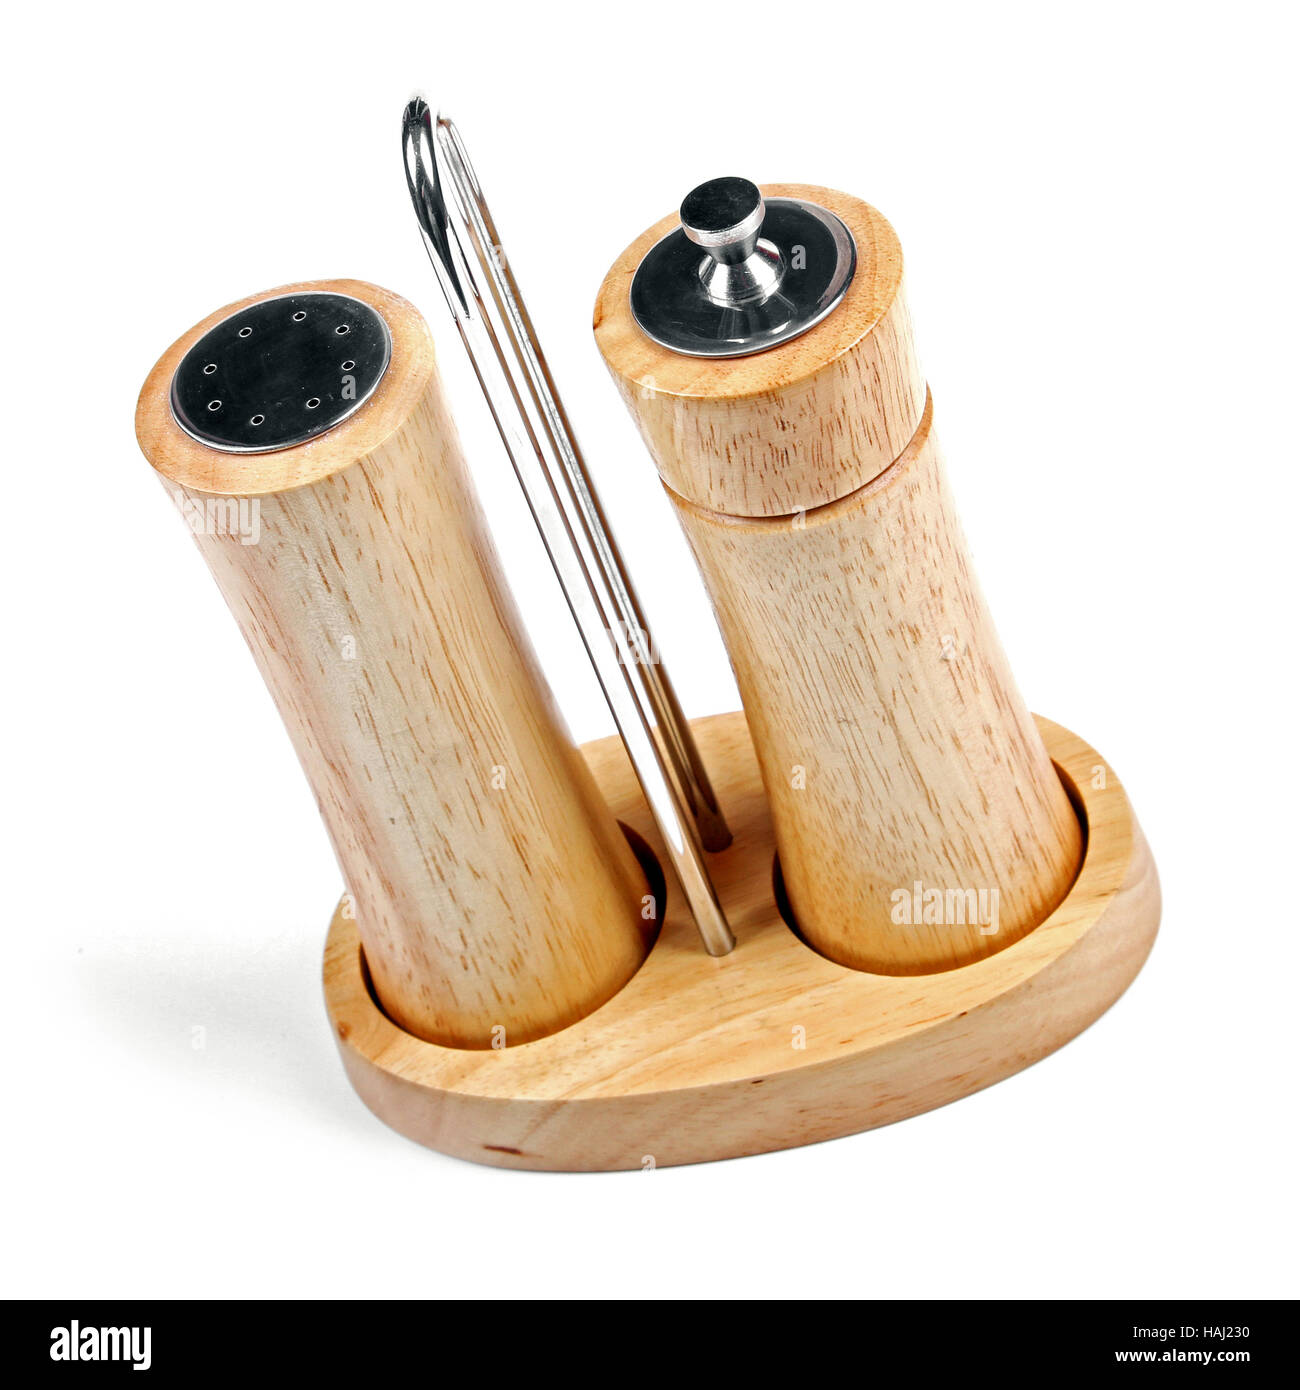 salt and pepper mills isolated on white - Stock Image